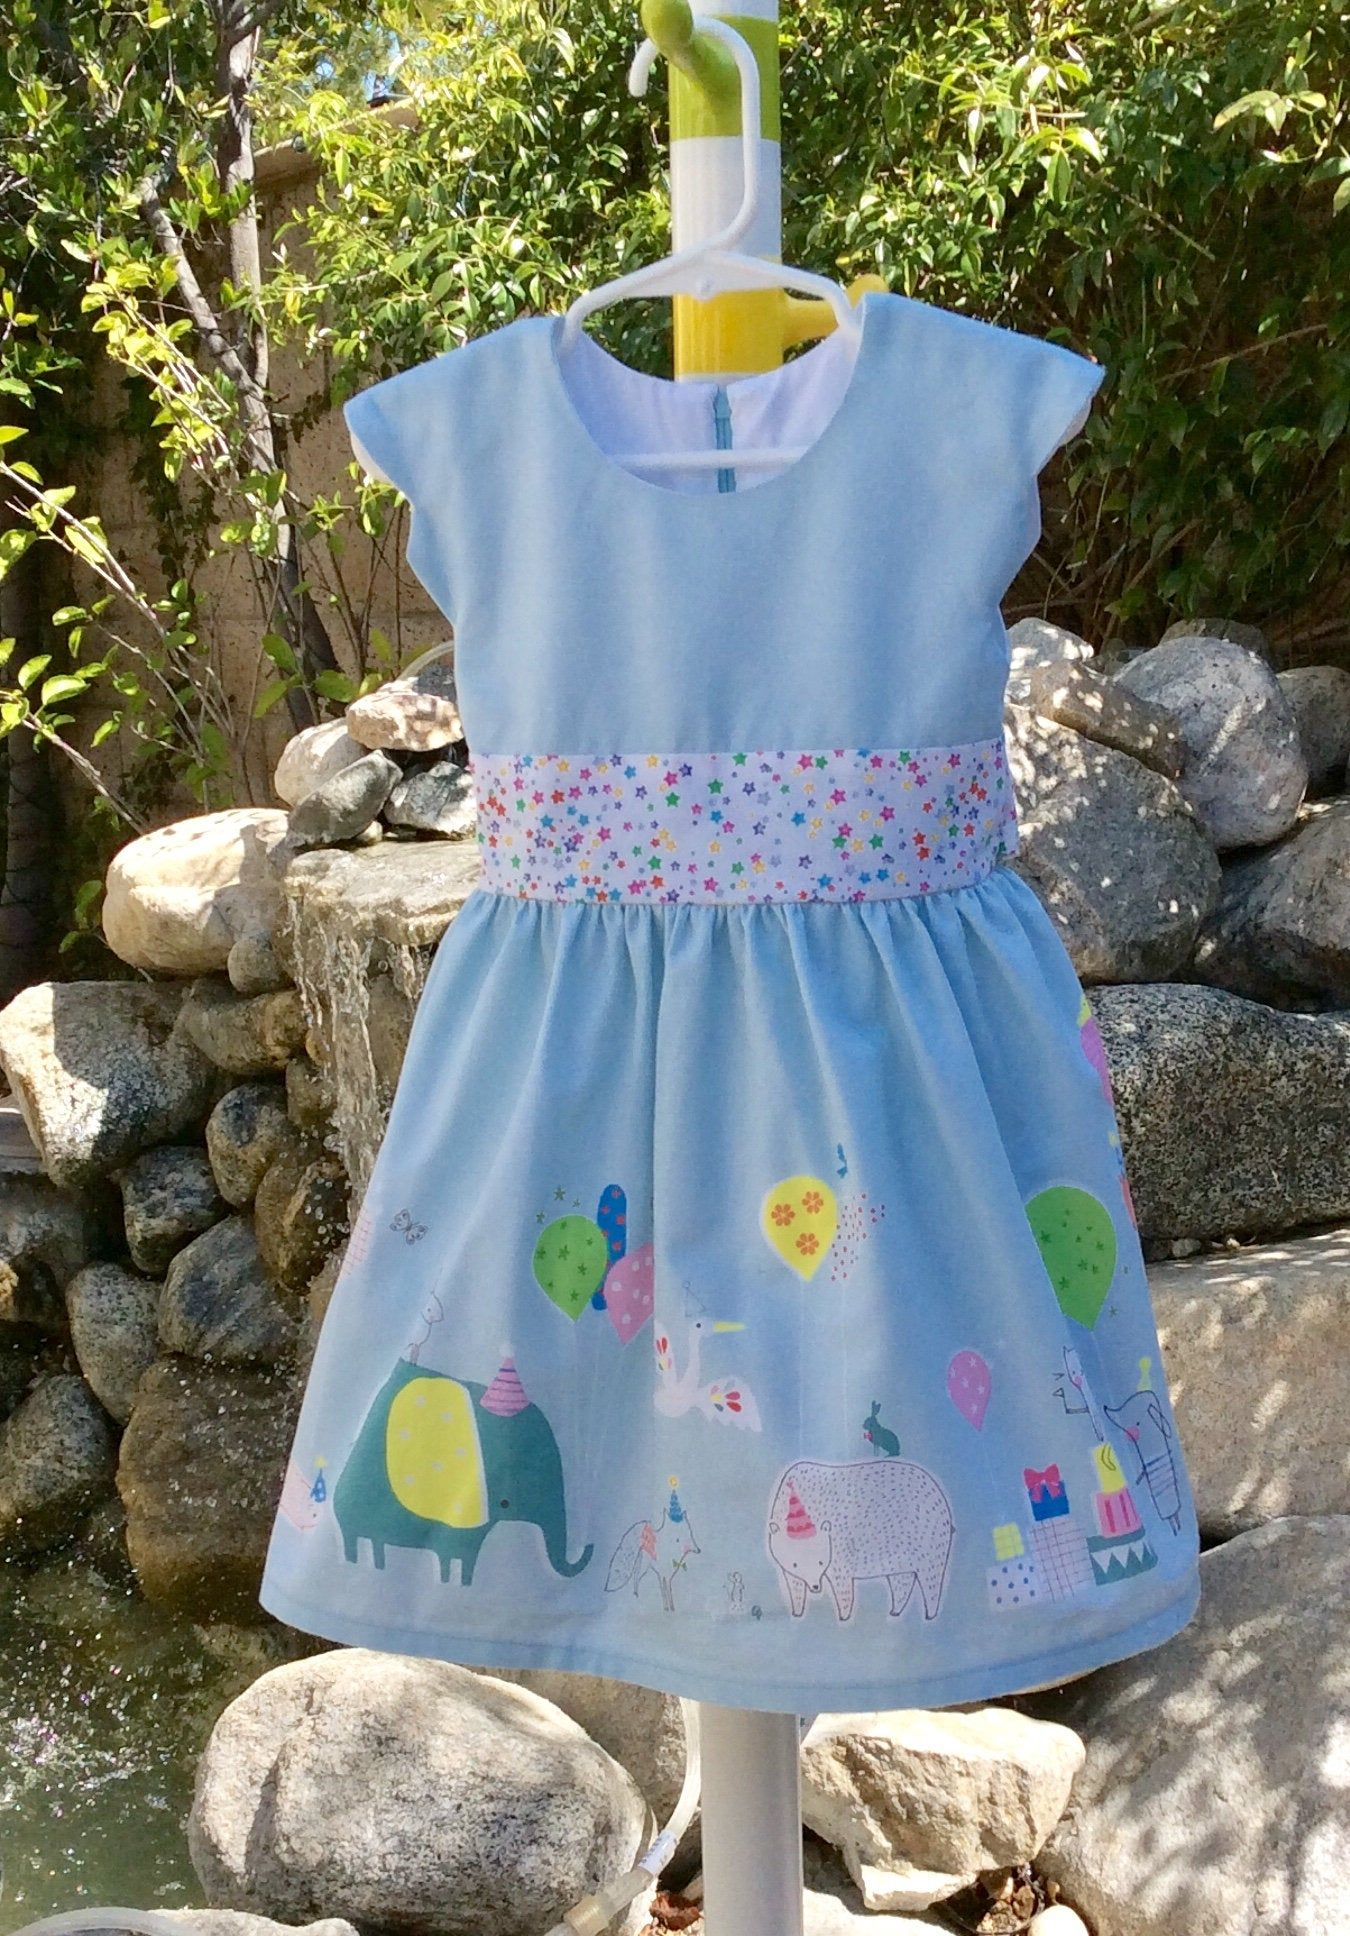 Baby Girls And Toddlers Birthday Party Dress Animals Parade Etsy Toddler Birthday Dress Birthday Party Dress Baby Girl Party Dresses [ 1936 x 1350 Pixel ]